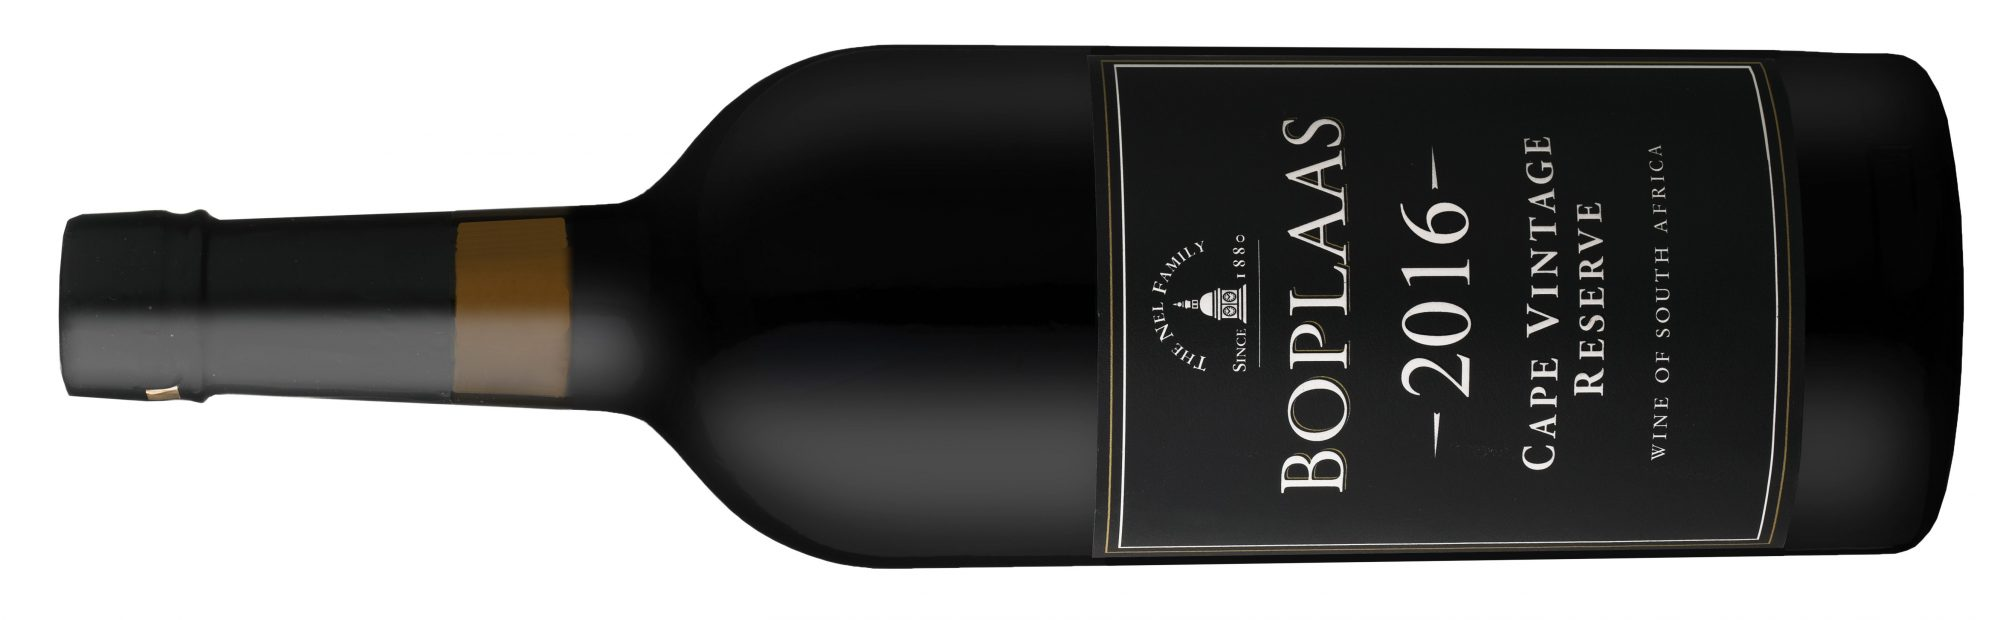 Rare release highlights Boplaas port's world class status photo